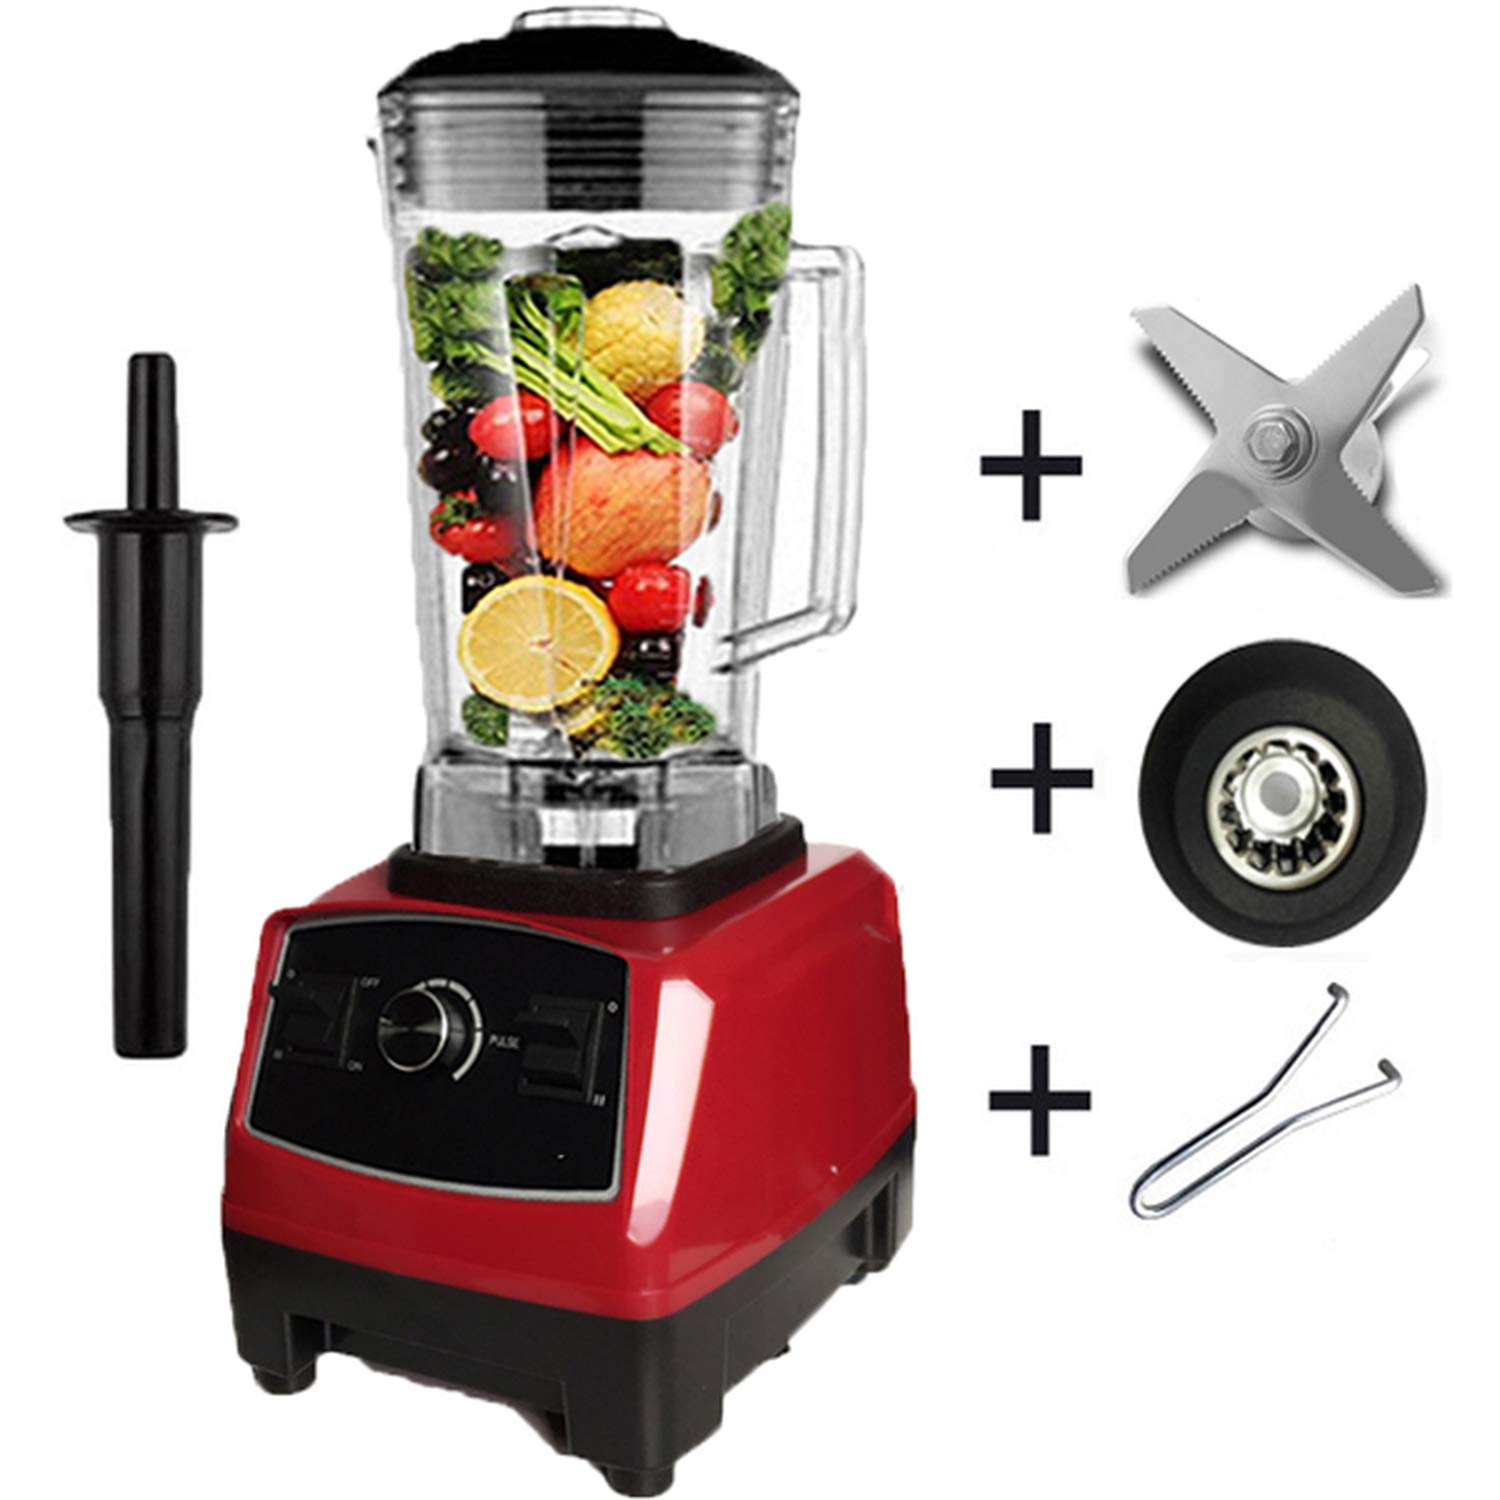 Best Motor commercial professional smoothies power blender food mixer processor,Red full parts